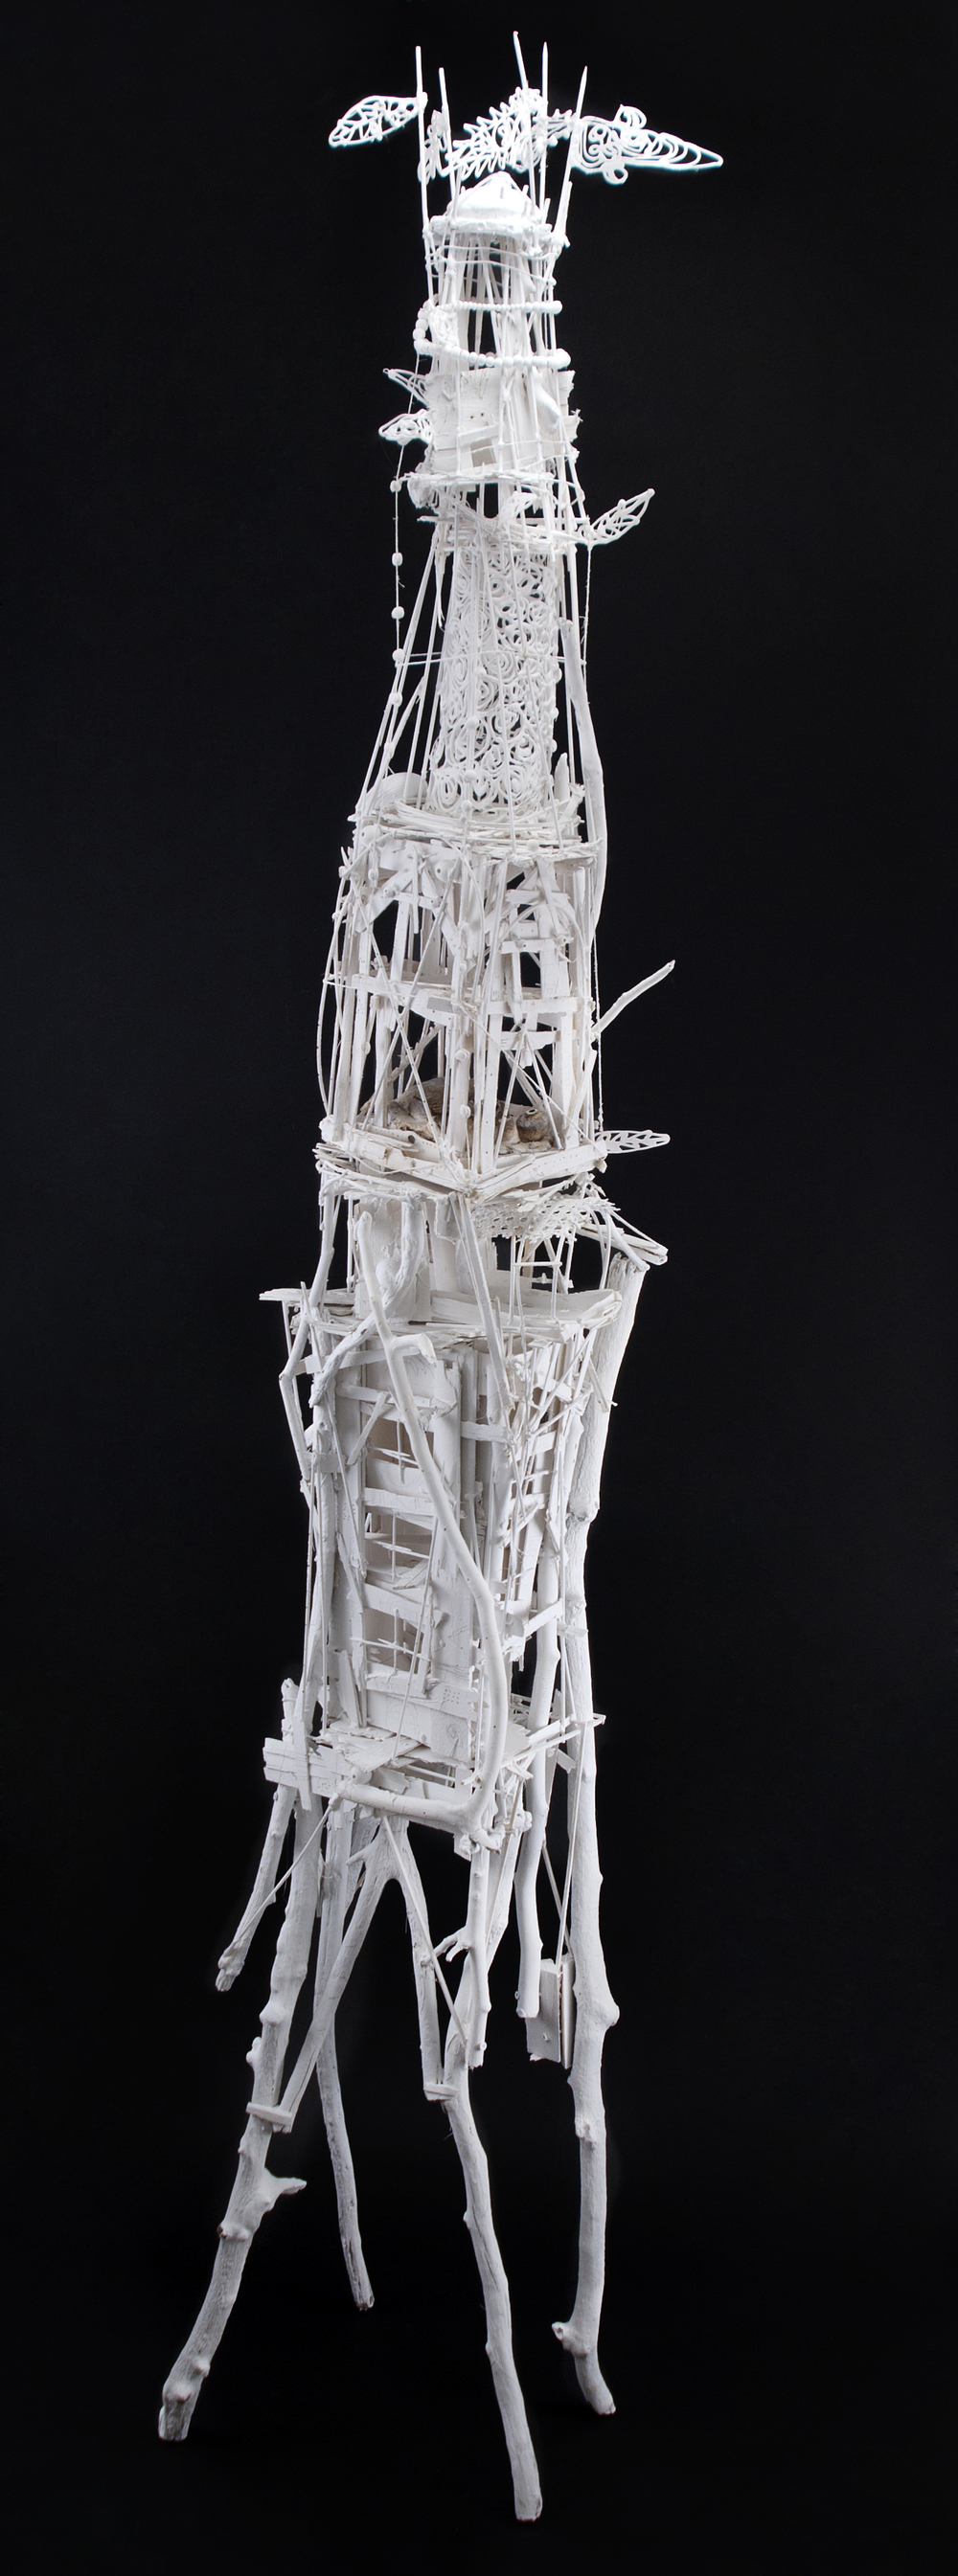 Sylvain Corentin    Rome Tower  , 2012 Wood, canvas, wire, yarn, glue, paint 88 x 16 x 13 inches  /  223.5 x 40.6 x 33 cm  /  SCo 5